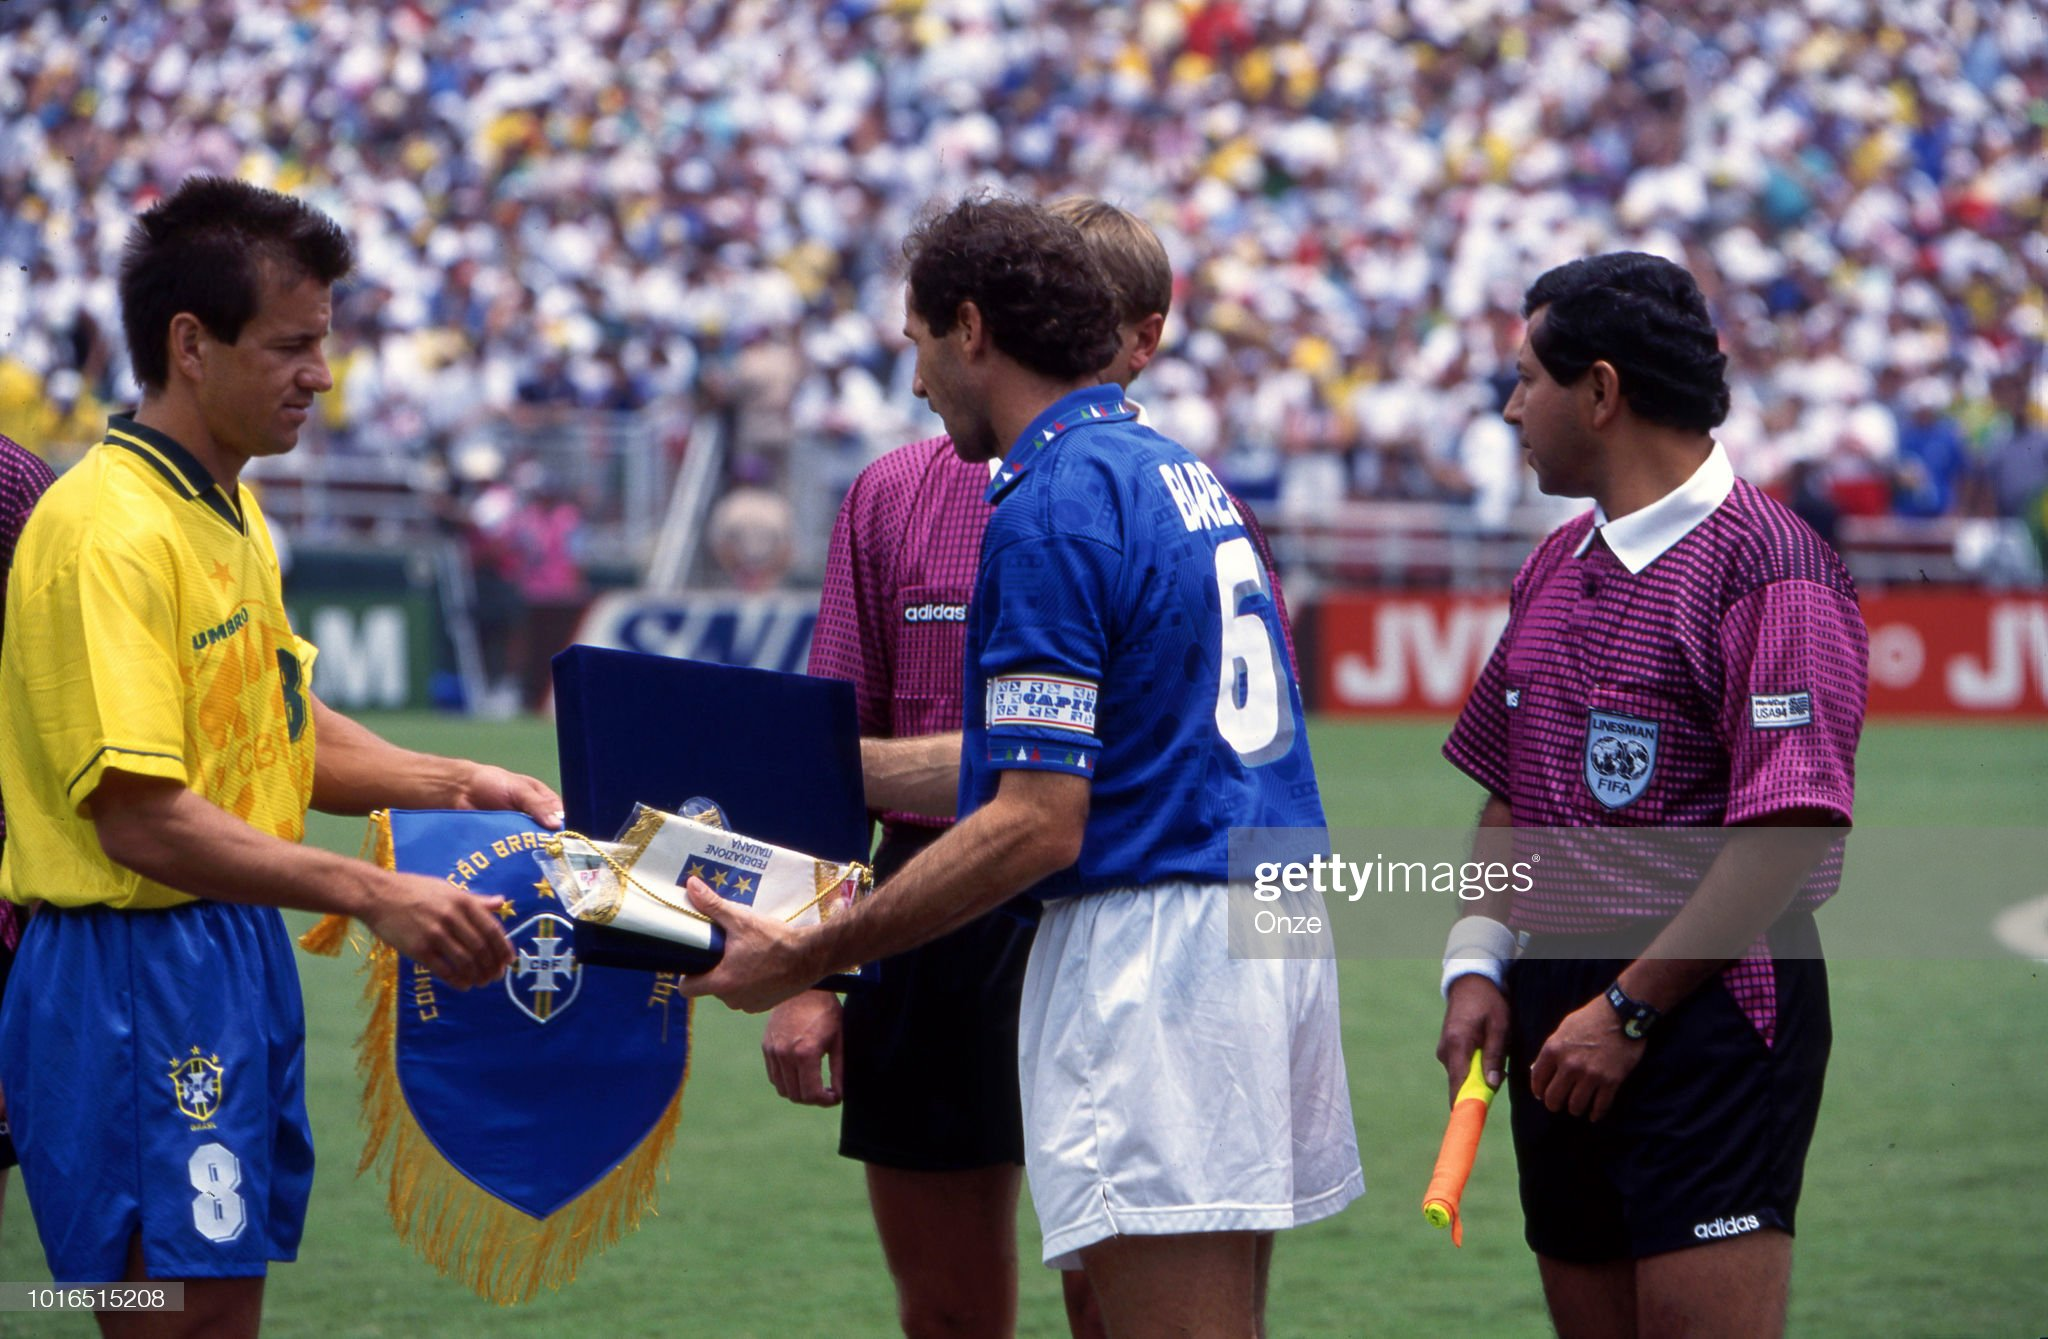 Brazil v Italy - 1994 FIFA World Cup Final : News Photo